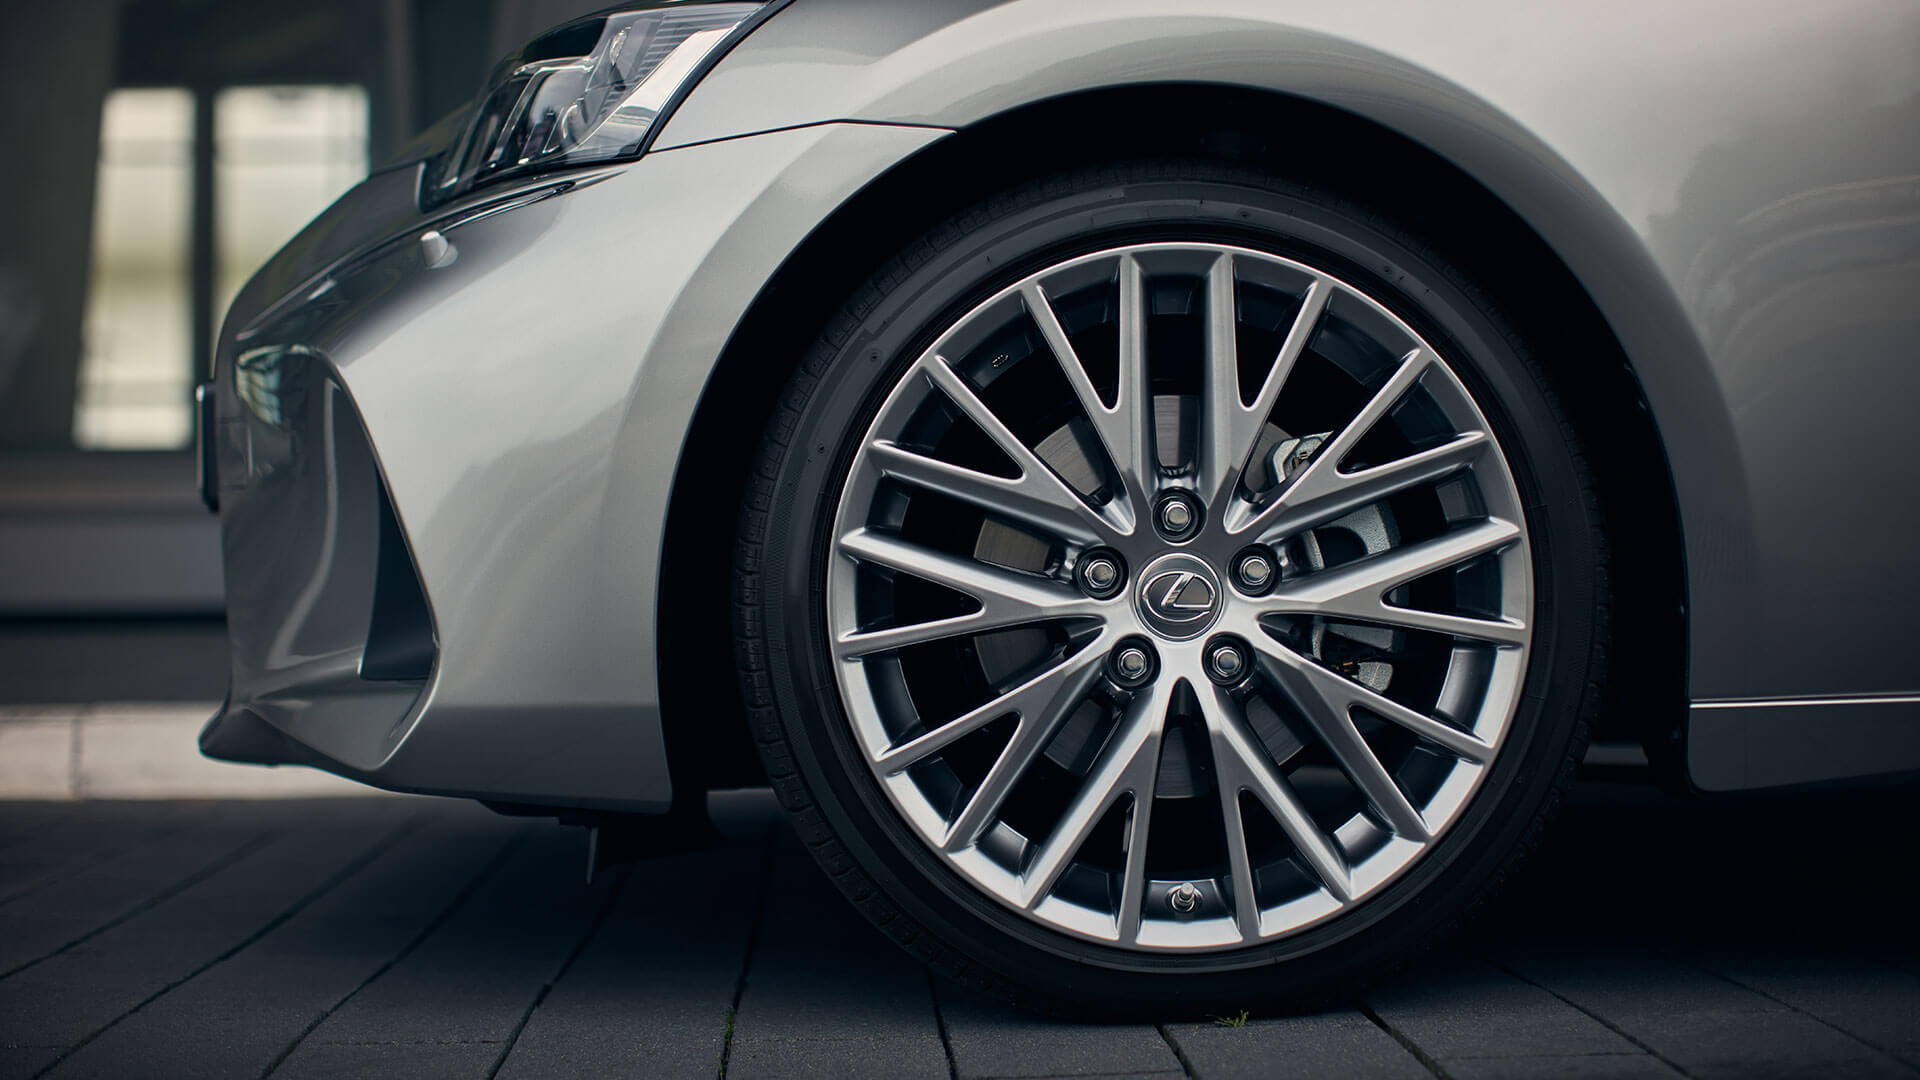 2017 lexus is 300h features alloy wheel